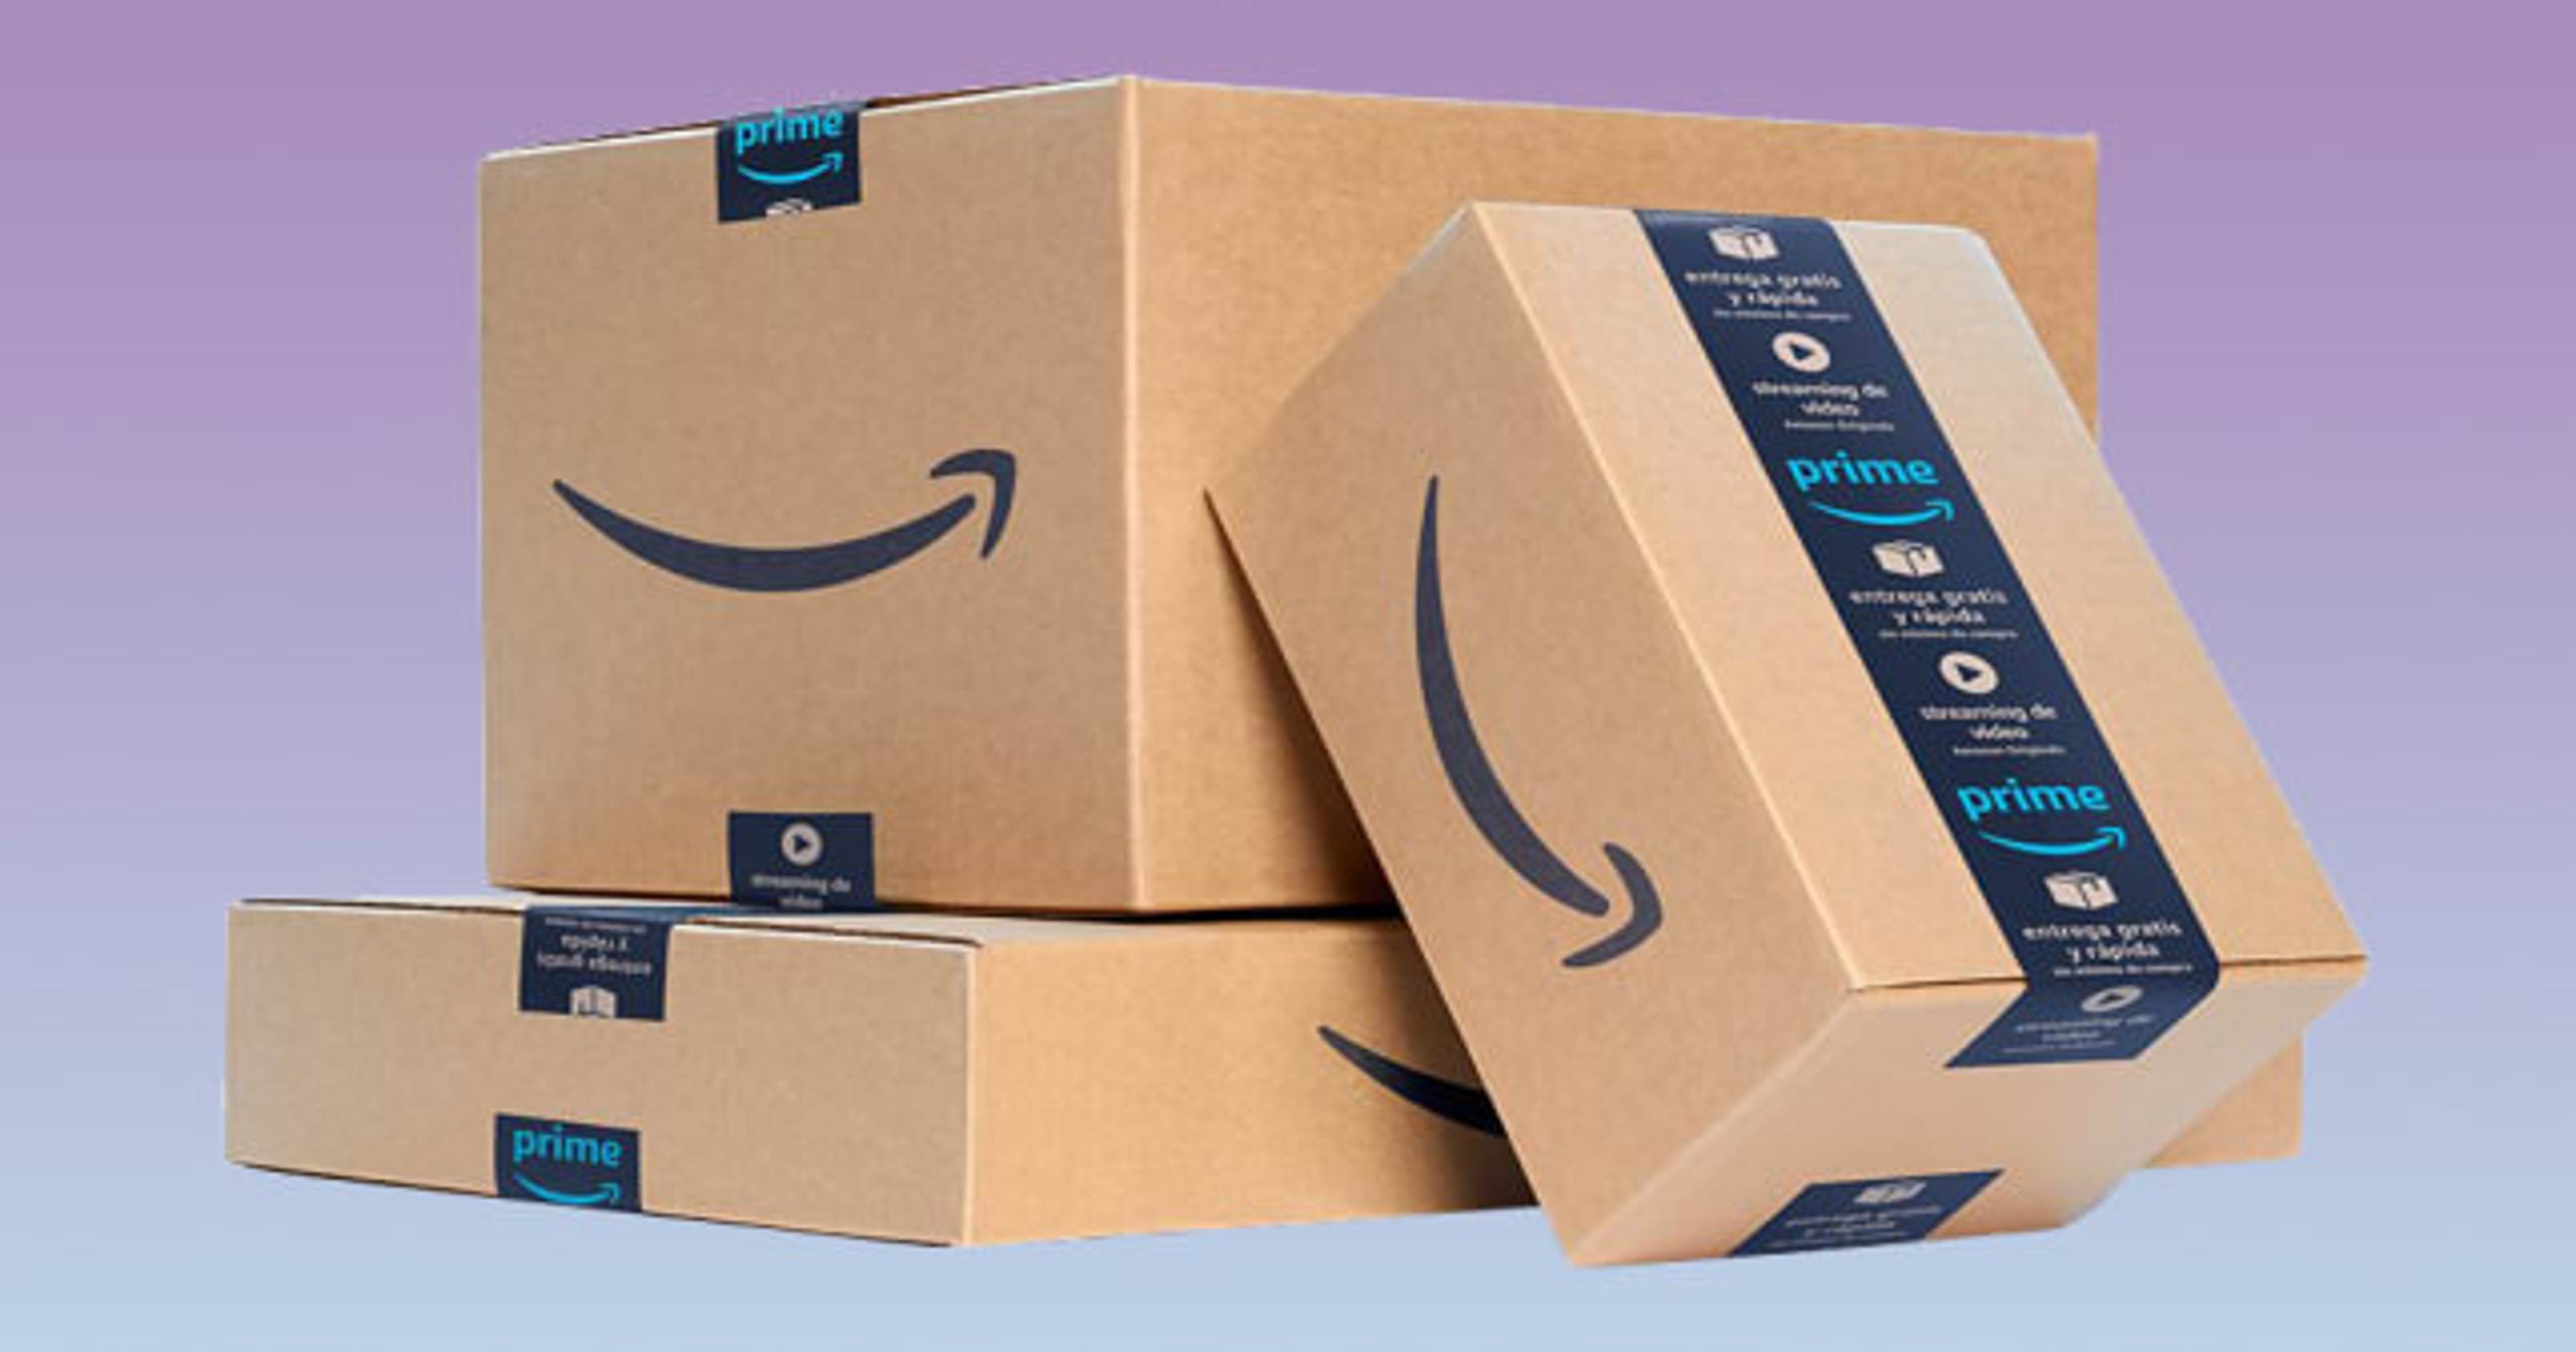 QnA VBage 9 Amazon Prime perks you didn't know about – until now